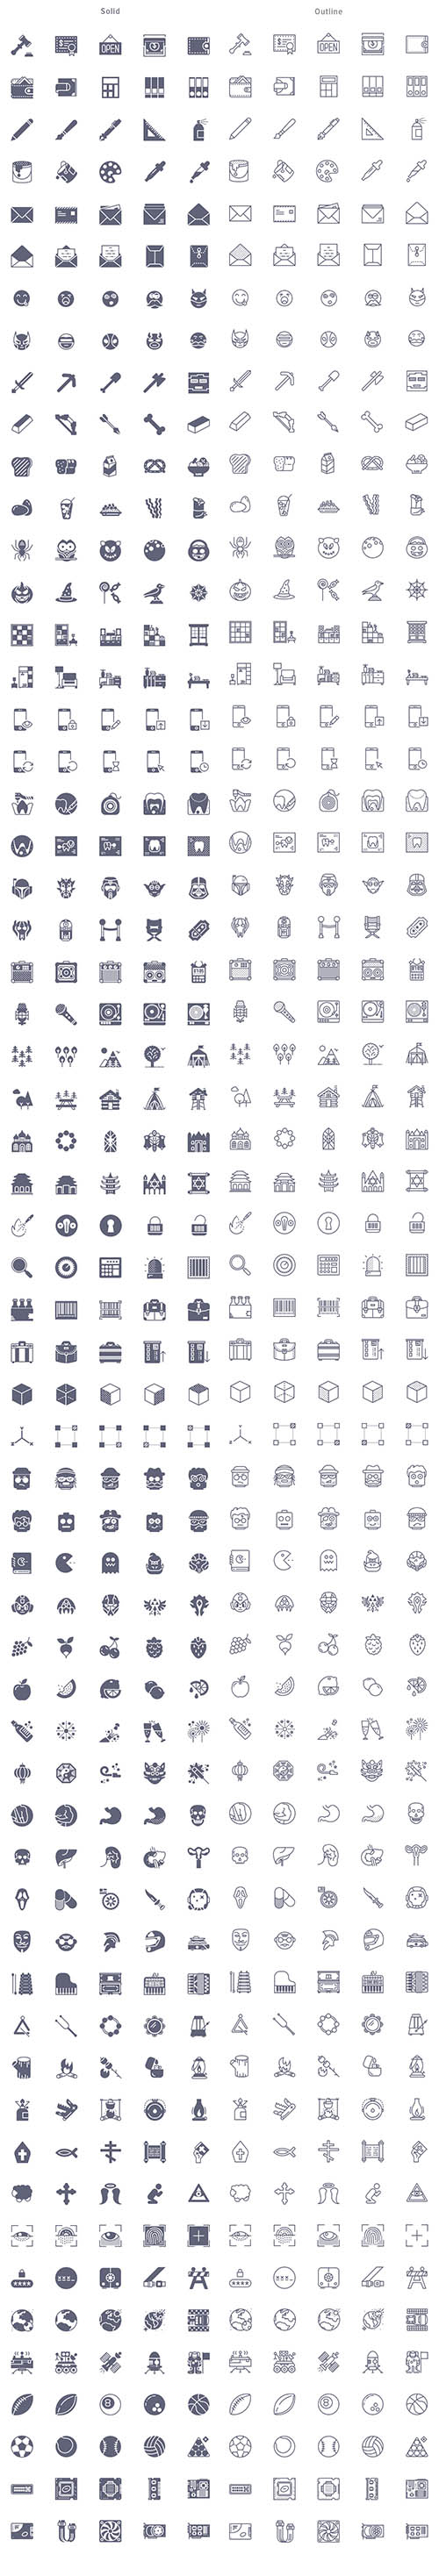 AI, PSD, SCETCH Vector Icons - 300 Smashicons